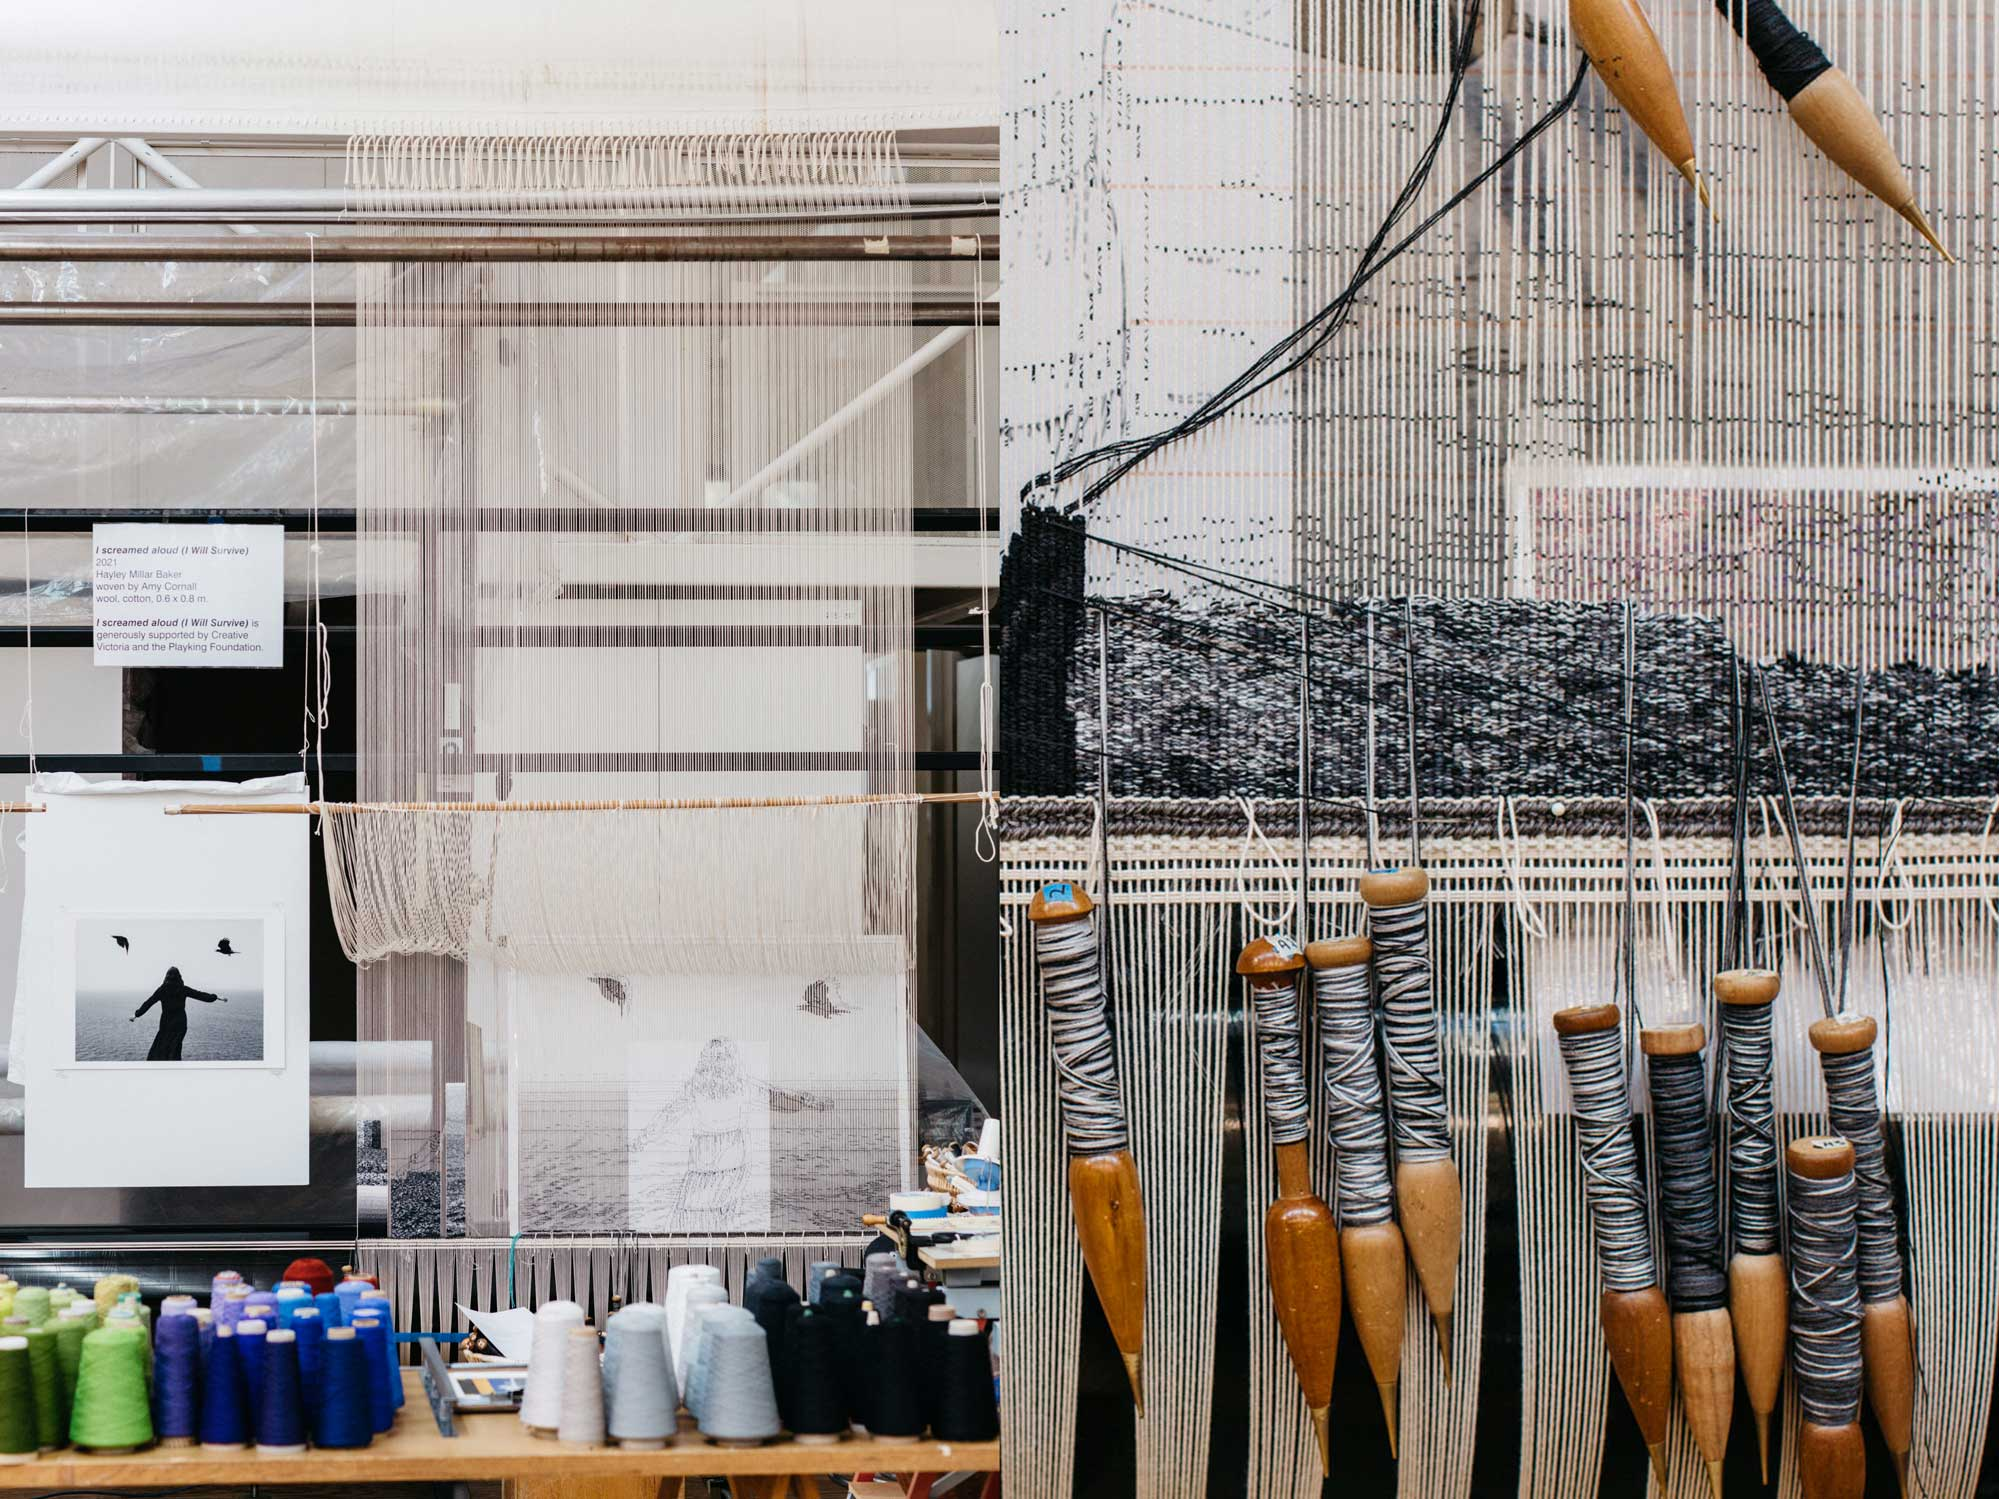 Tapestry in Progress: 'I screamed aloud (I Will Survive)', 2021, designed by Hayley Millar Baker, woven by Amy Cornall. Images courtesy of Marie-Luise Skibbe.